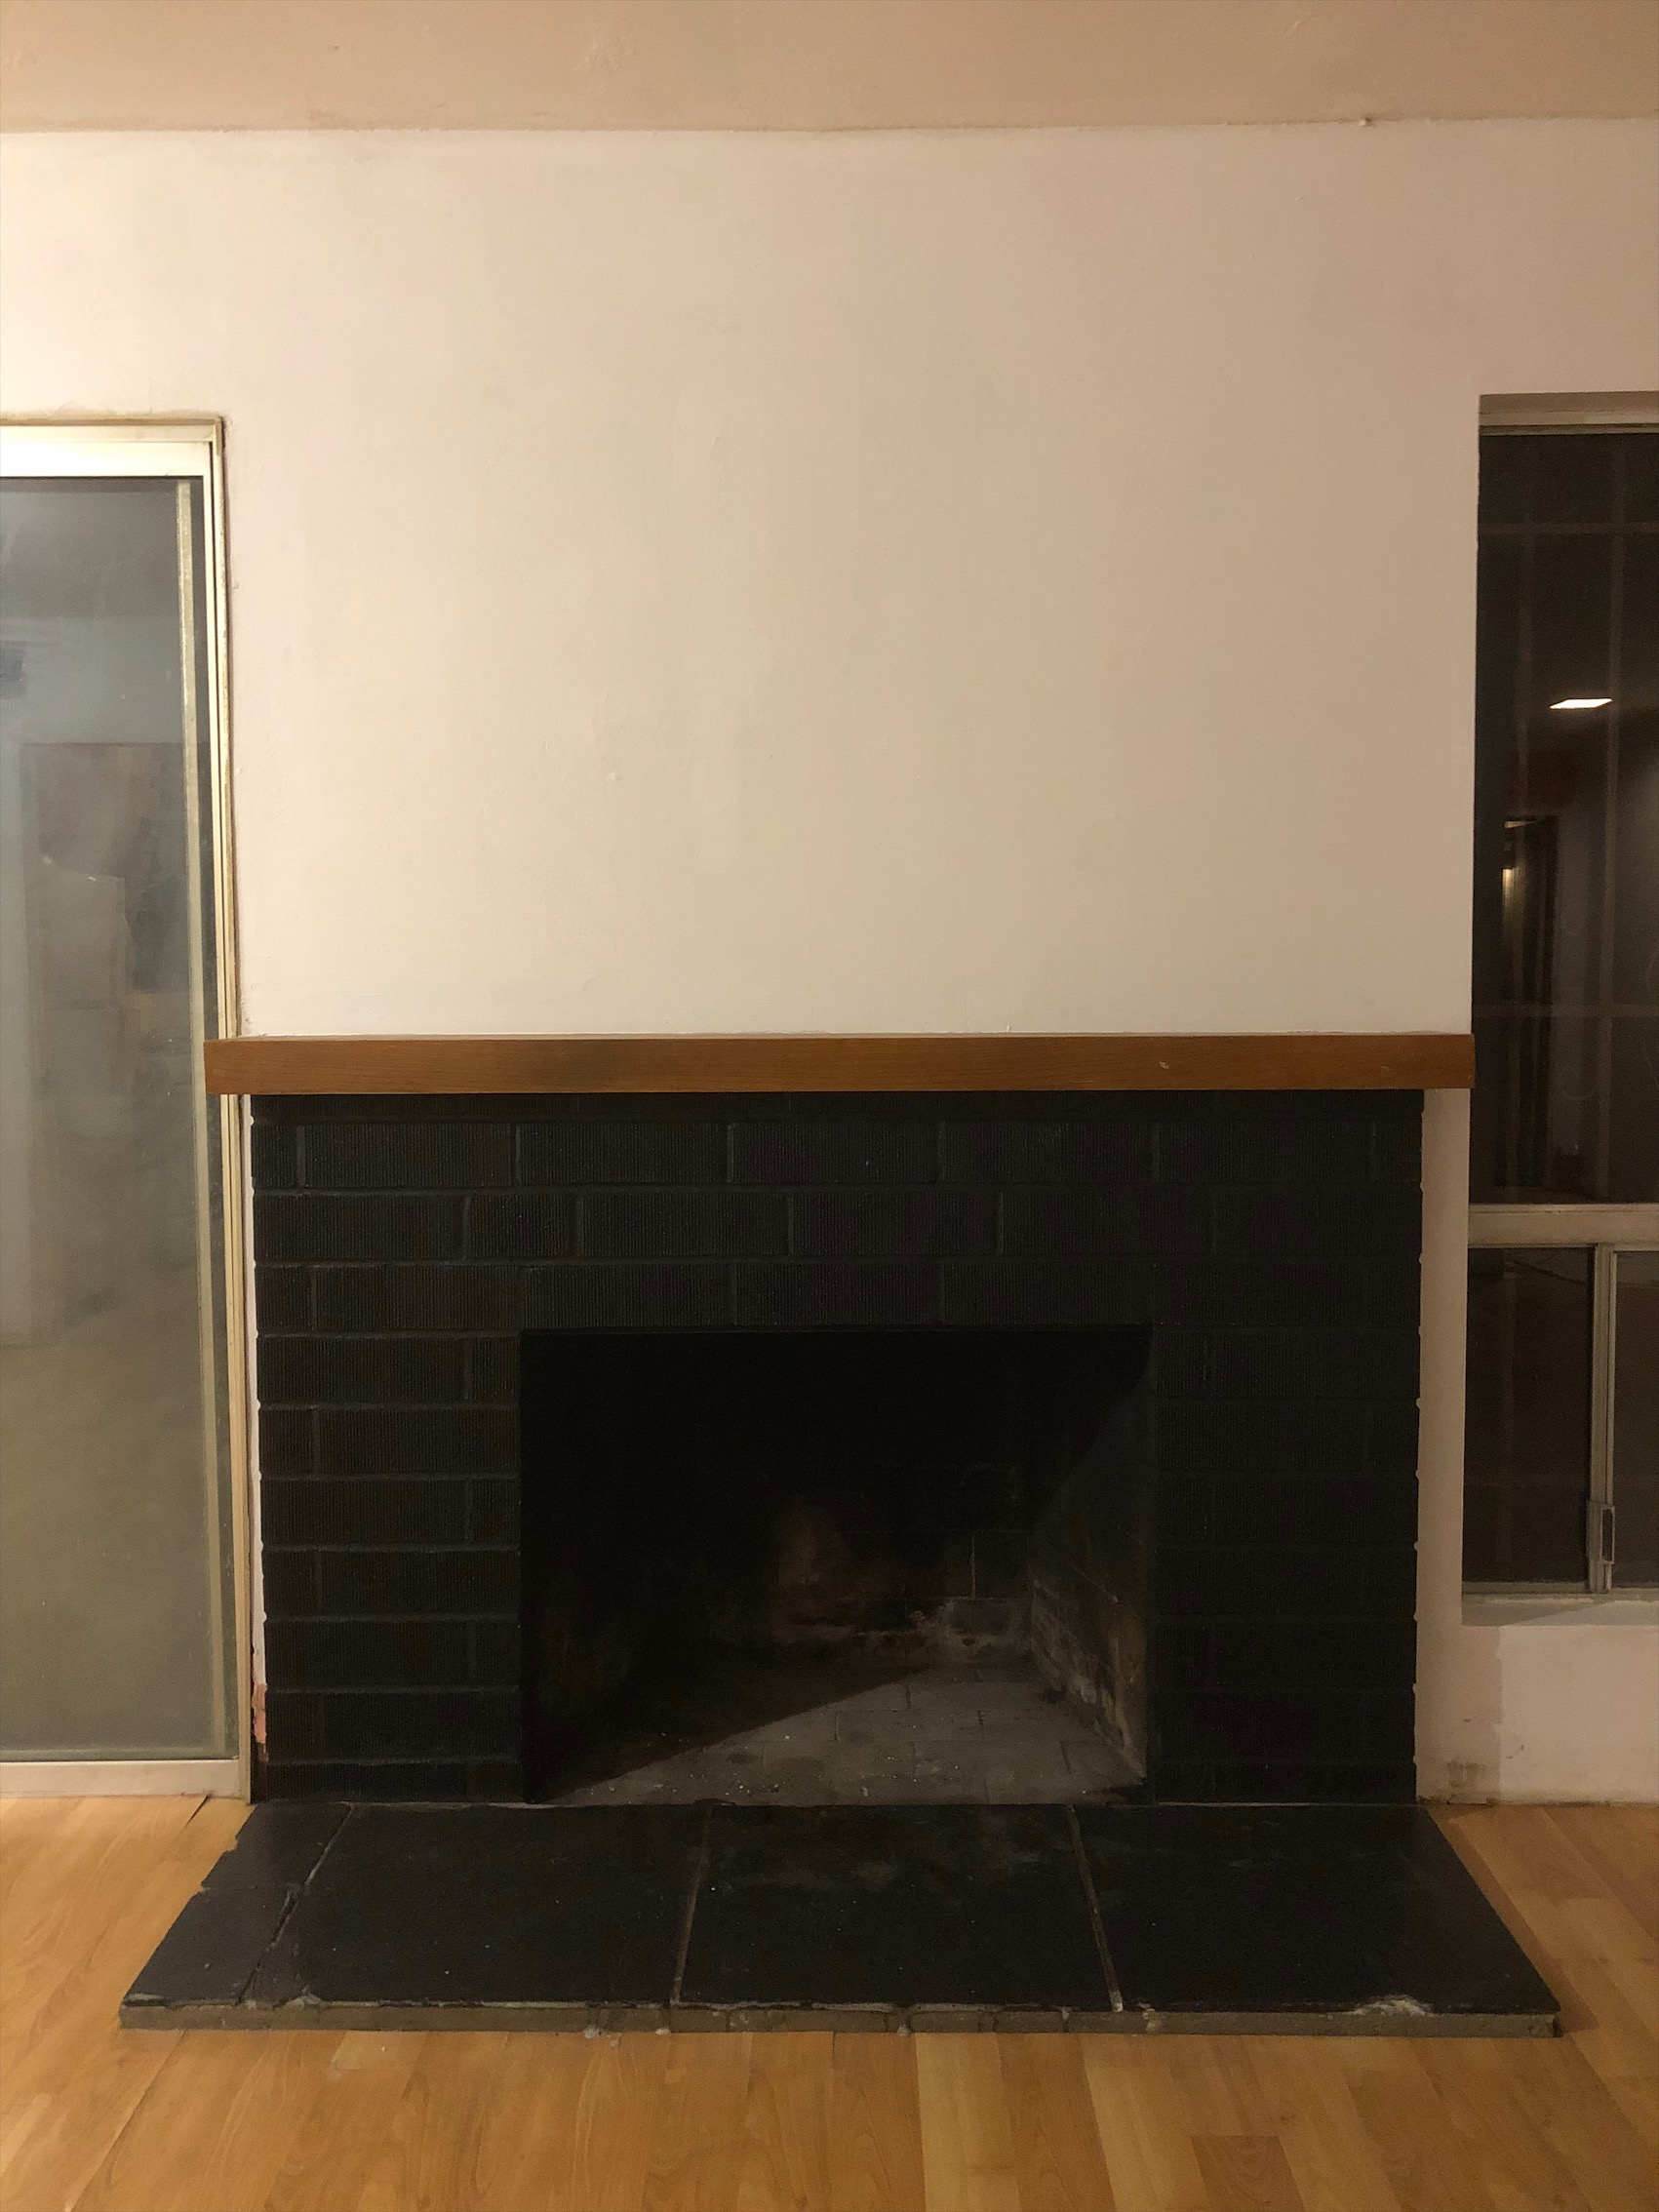 And this is what my fireplace look like now.